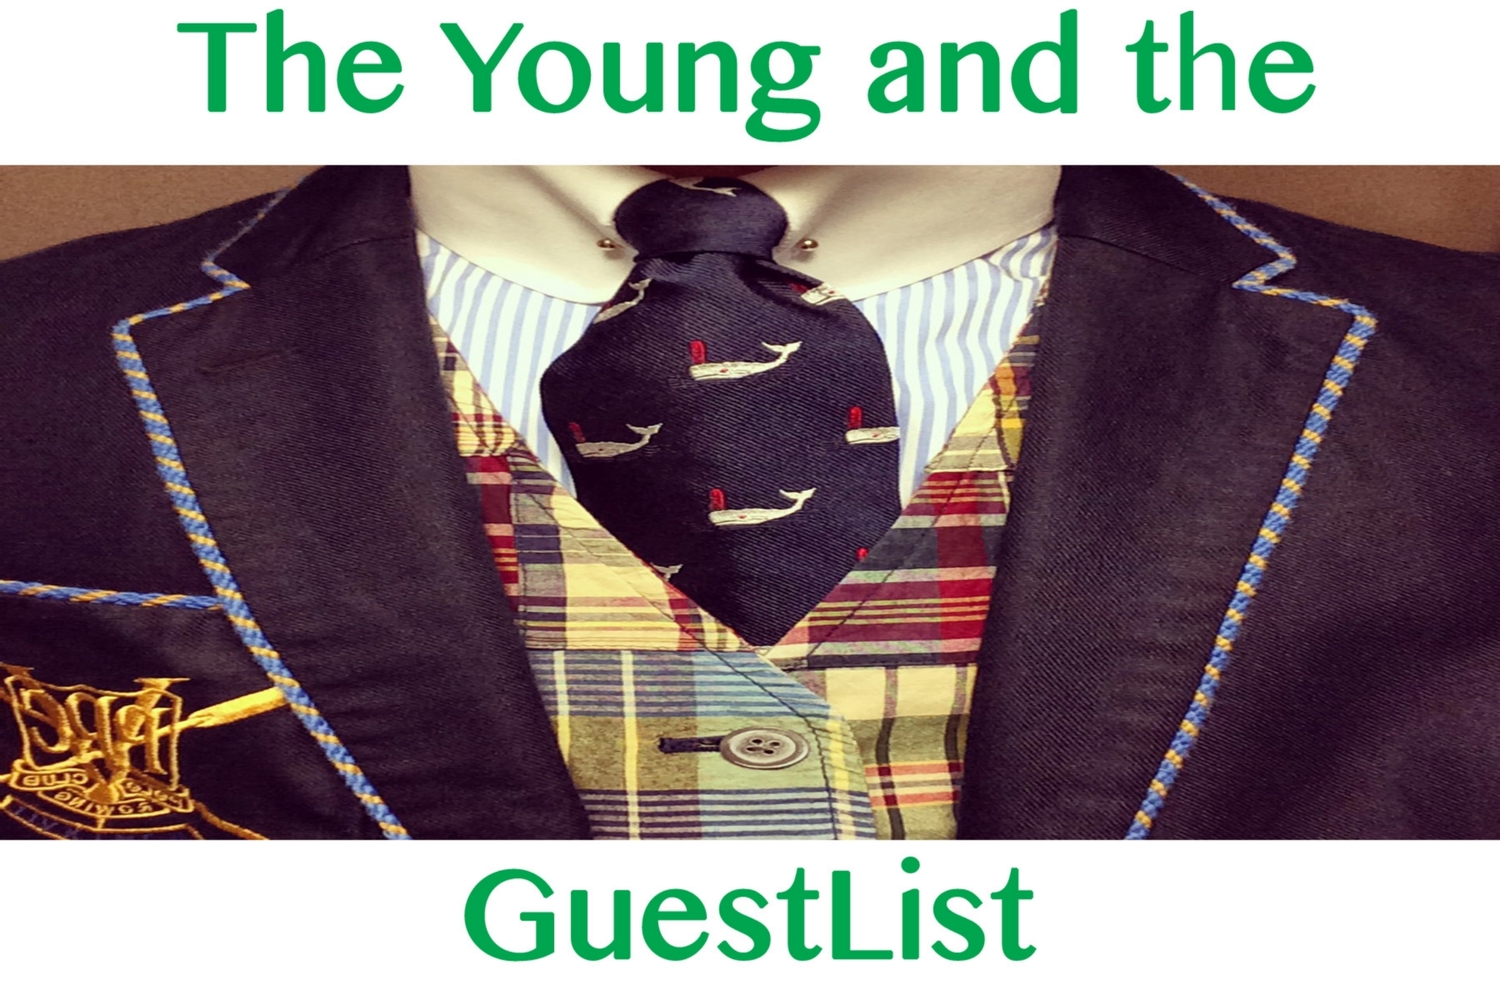 The Young and the Guest List